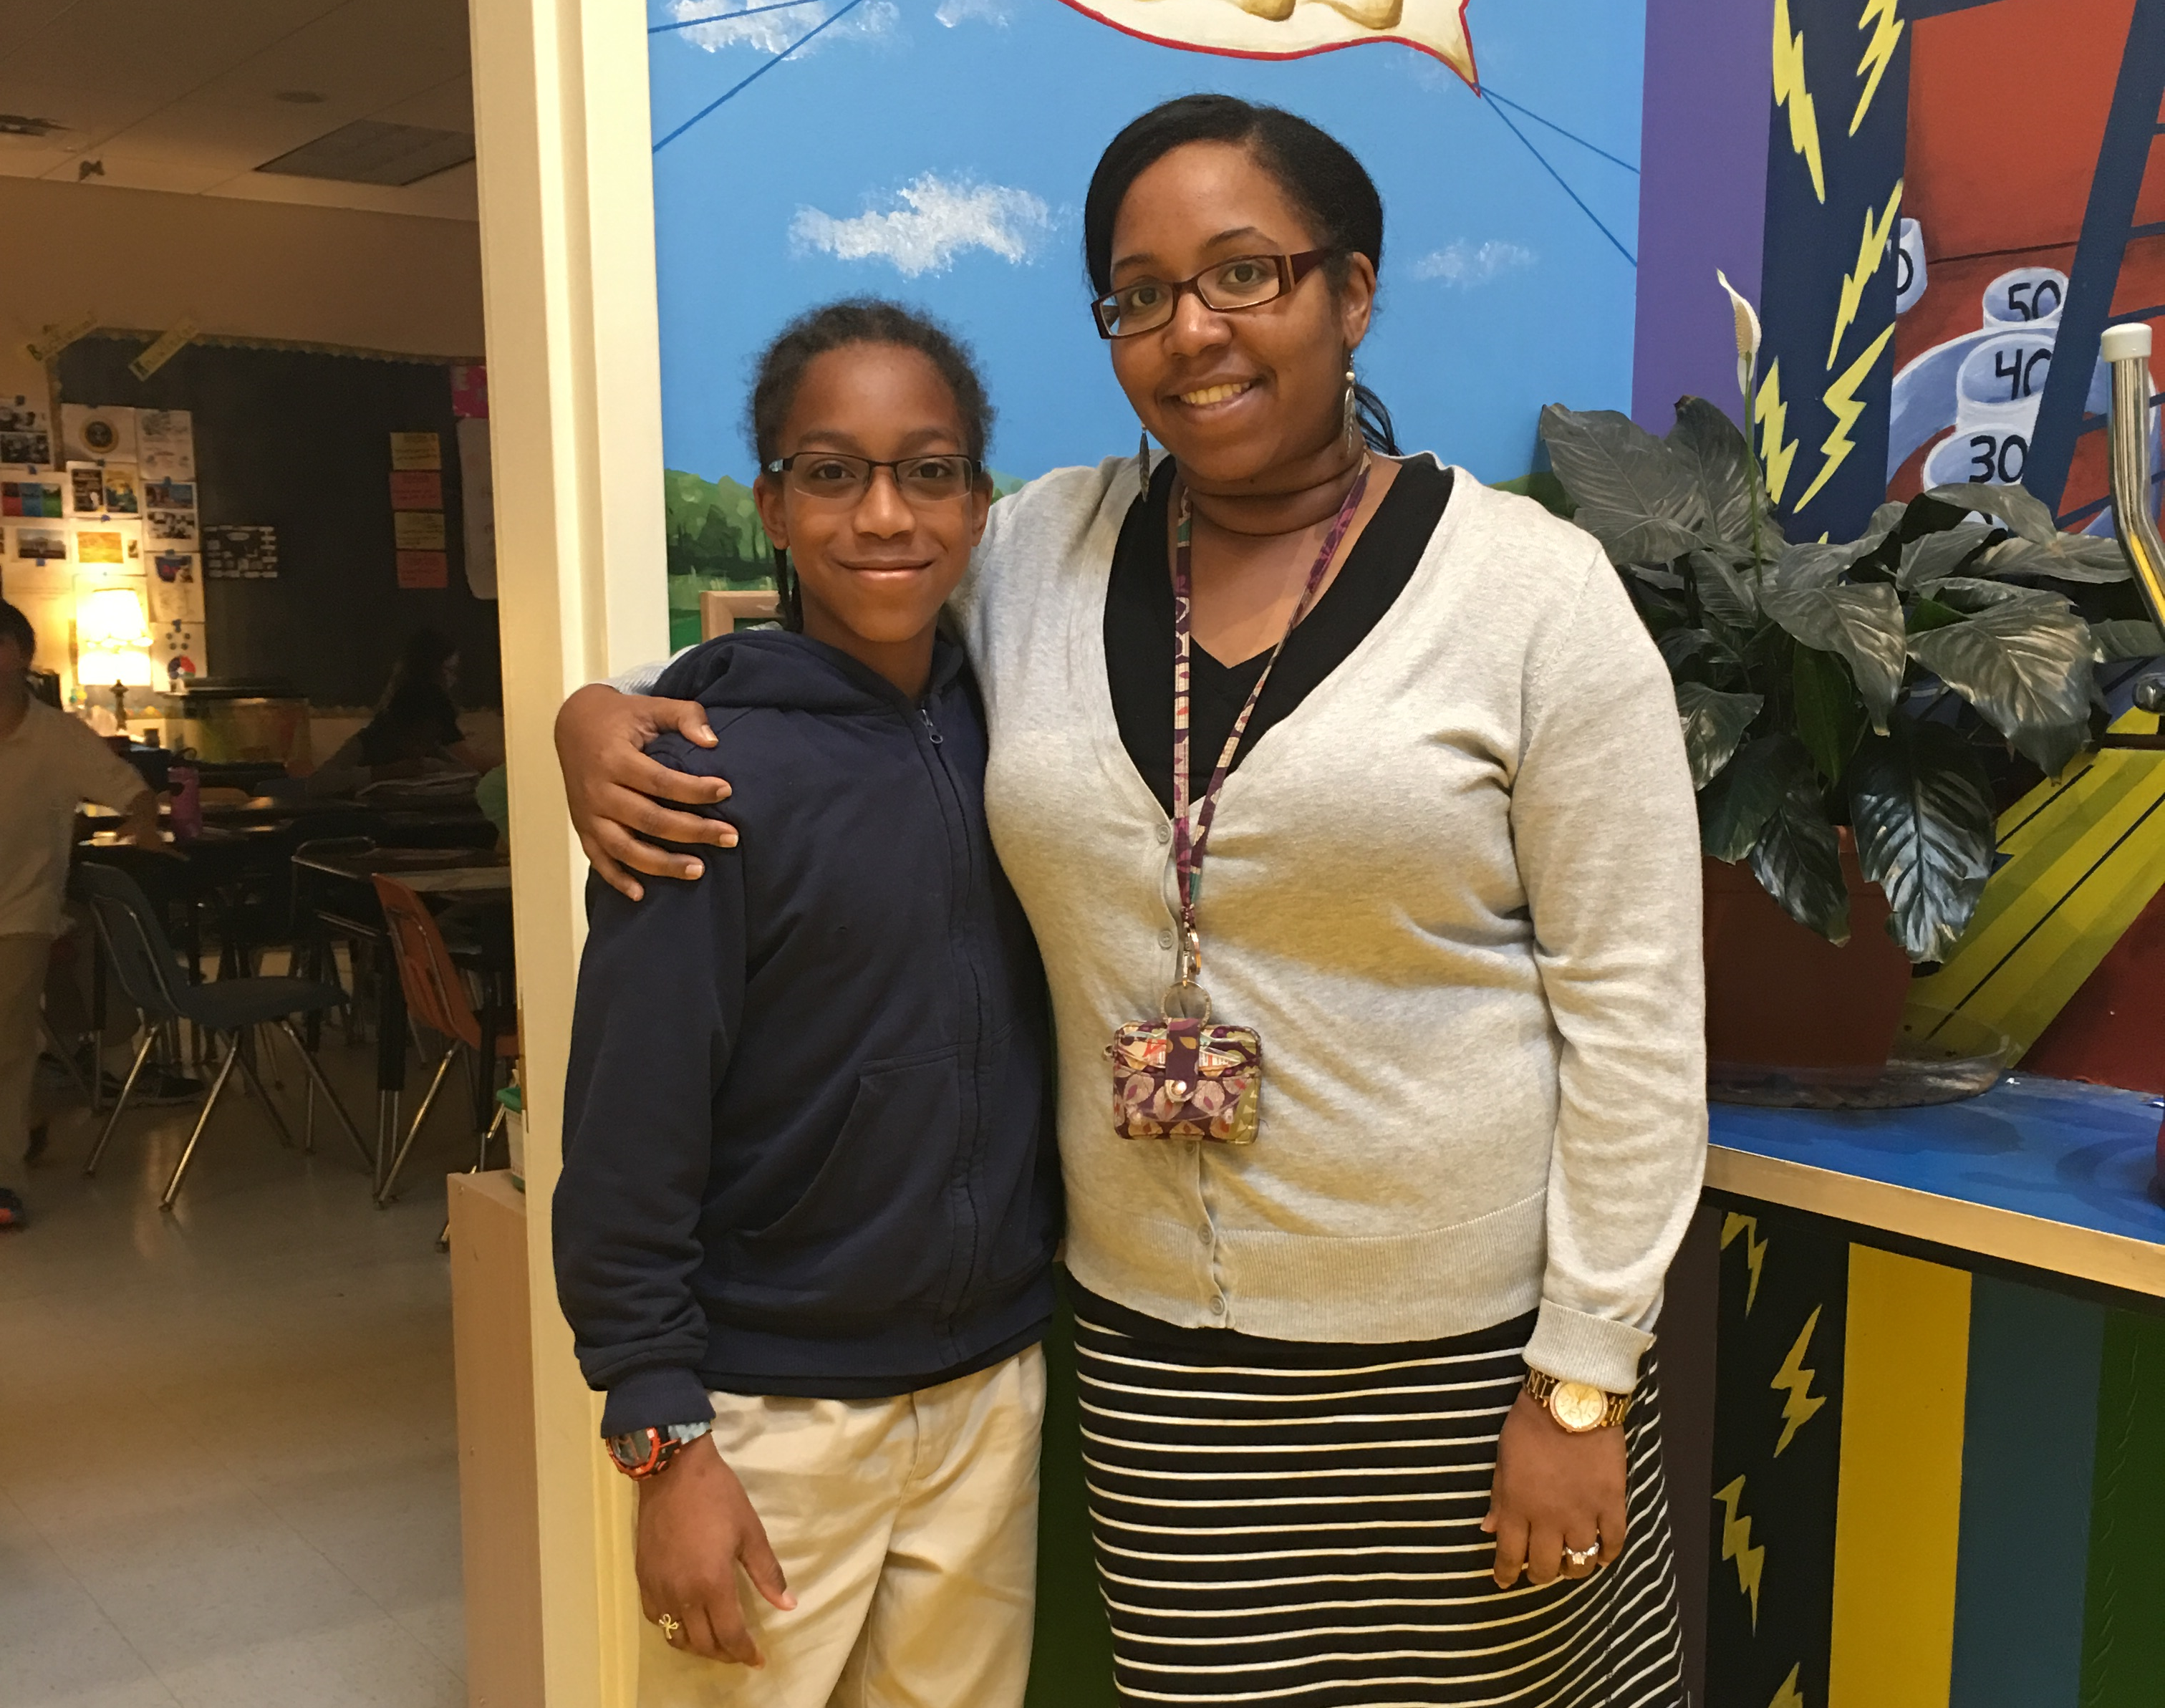 Maxwell standing next to his fifth grade teacher Ms. Tanya